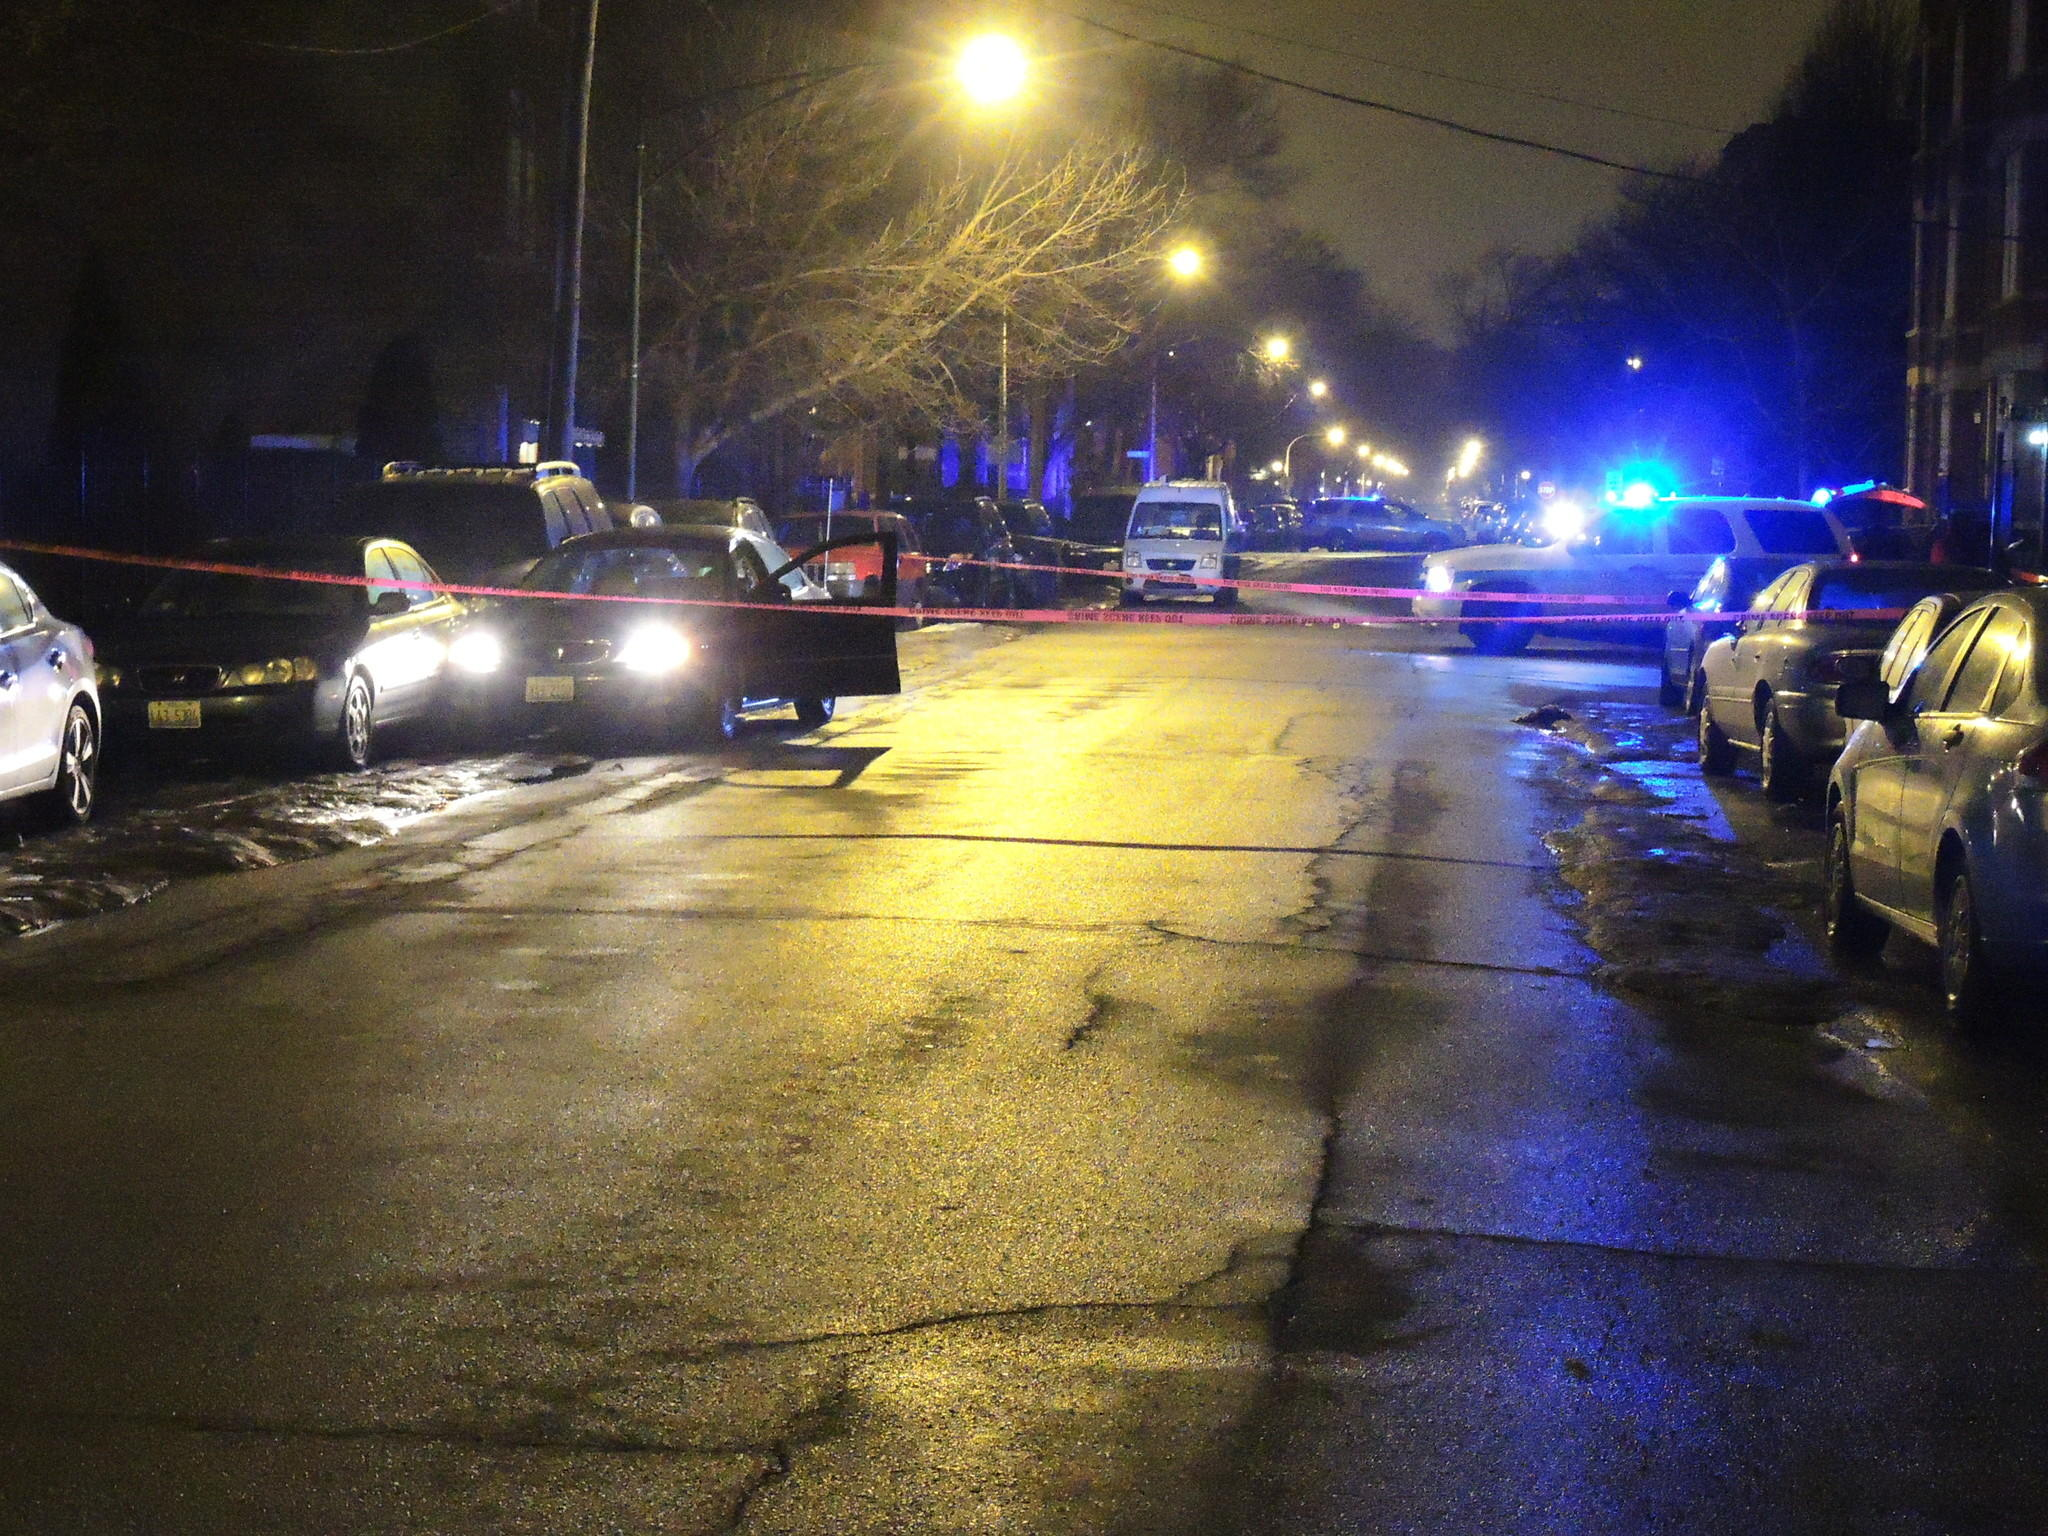 An empty car idles with its door ajar in the 1300 block of West Huron Street early Saturday morning, about an hour after police found a 29-year-old man shot inside a car there.